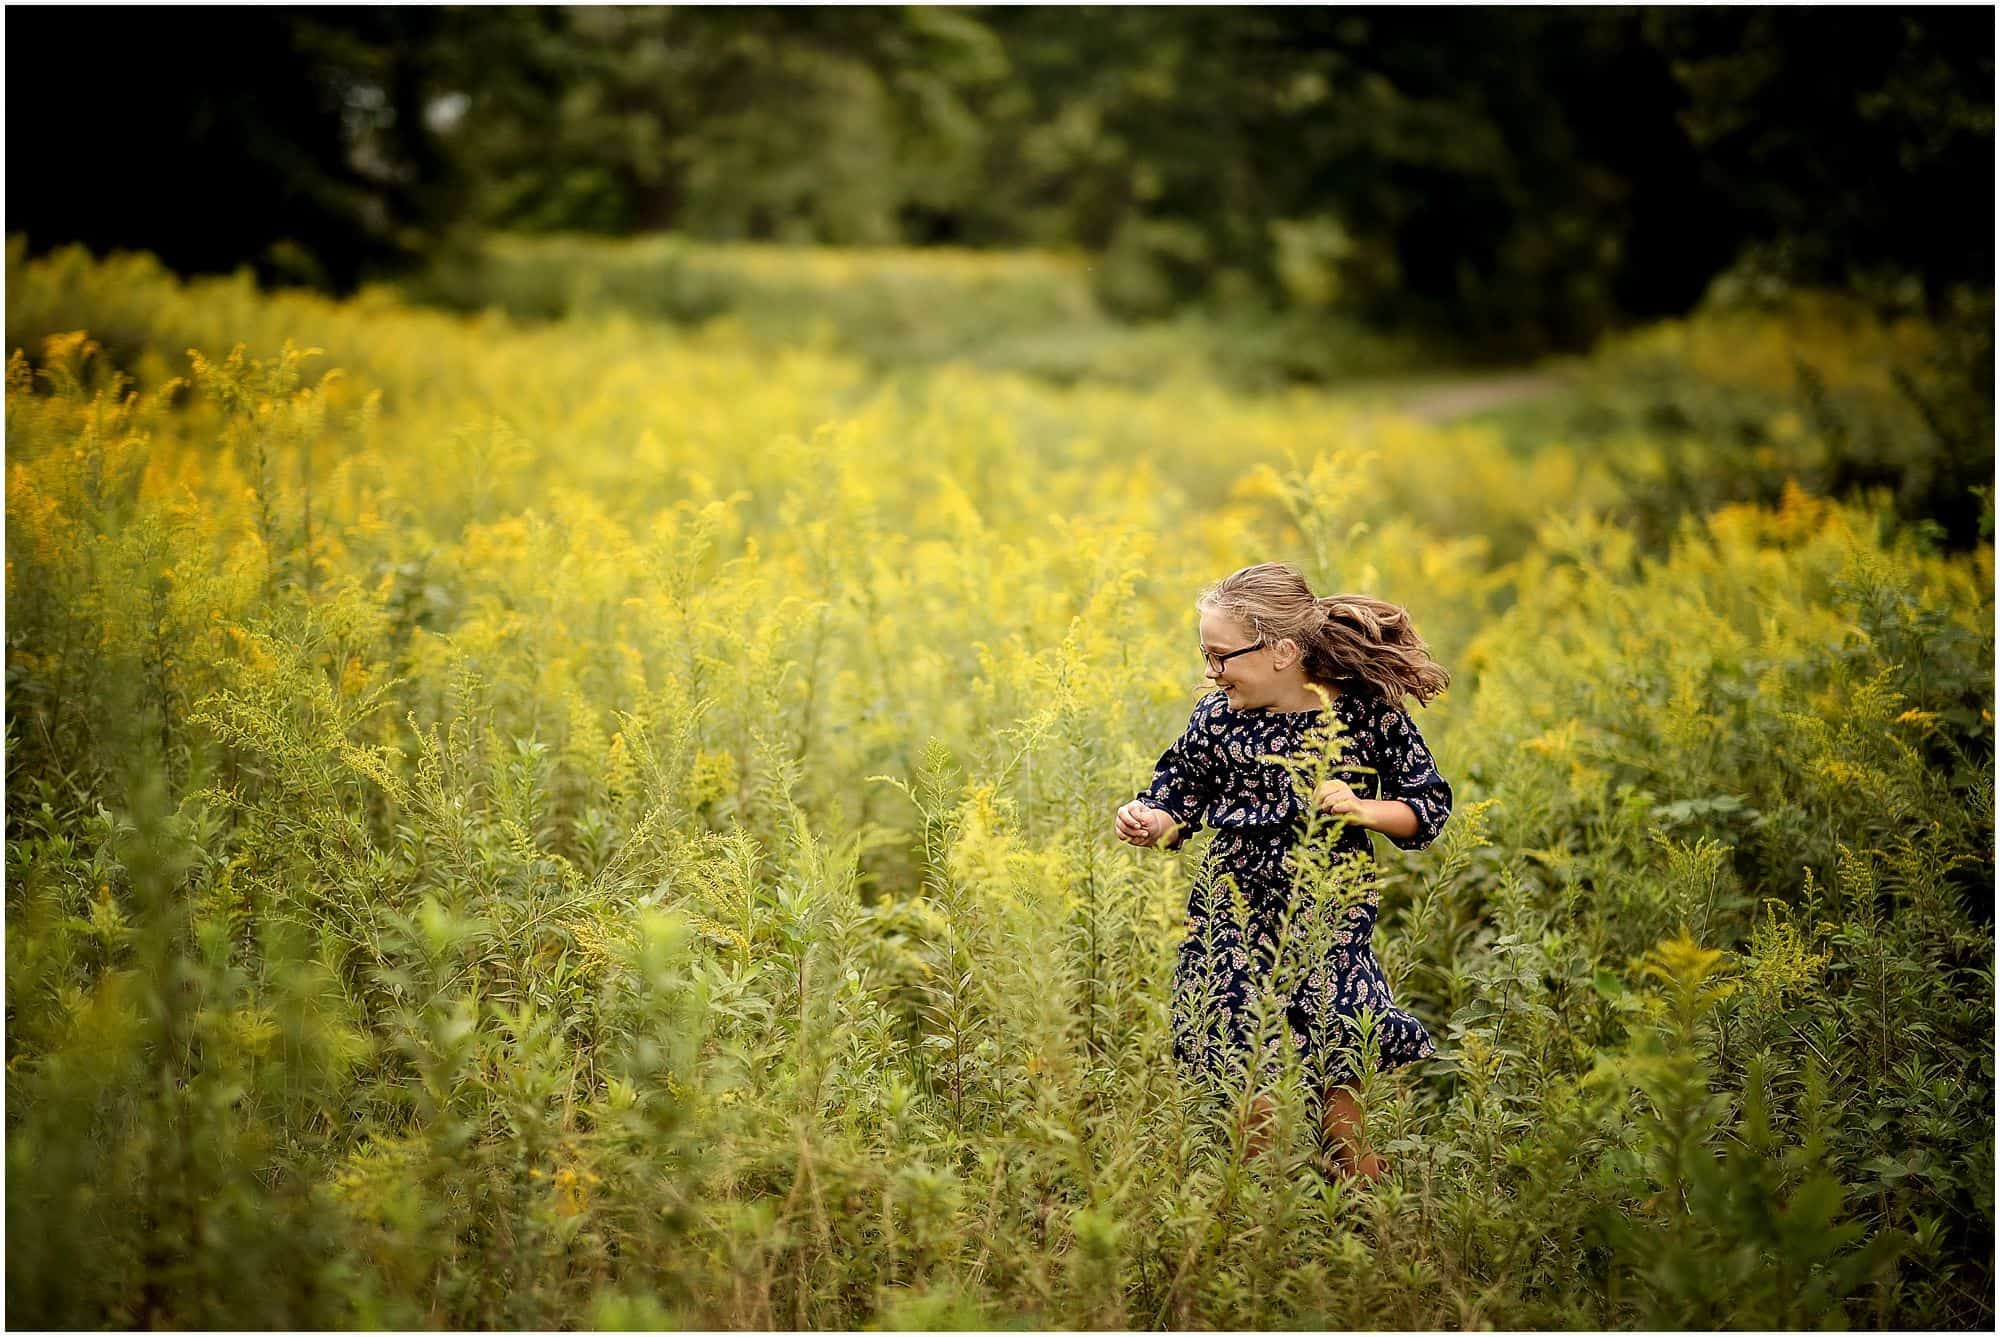 cincinnati family photographer Samantha sinchek pictures at golf course in amberly, ohio